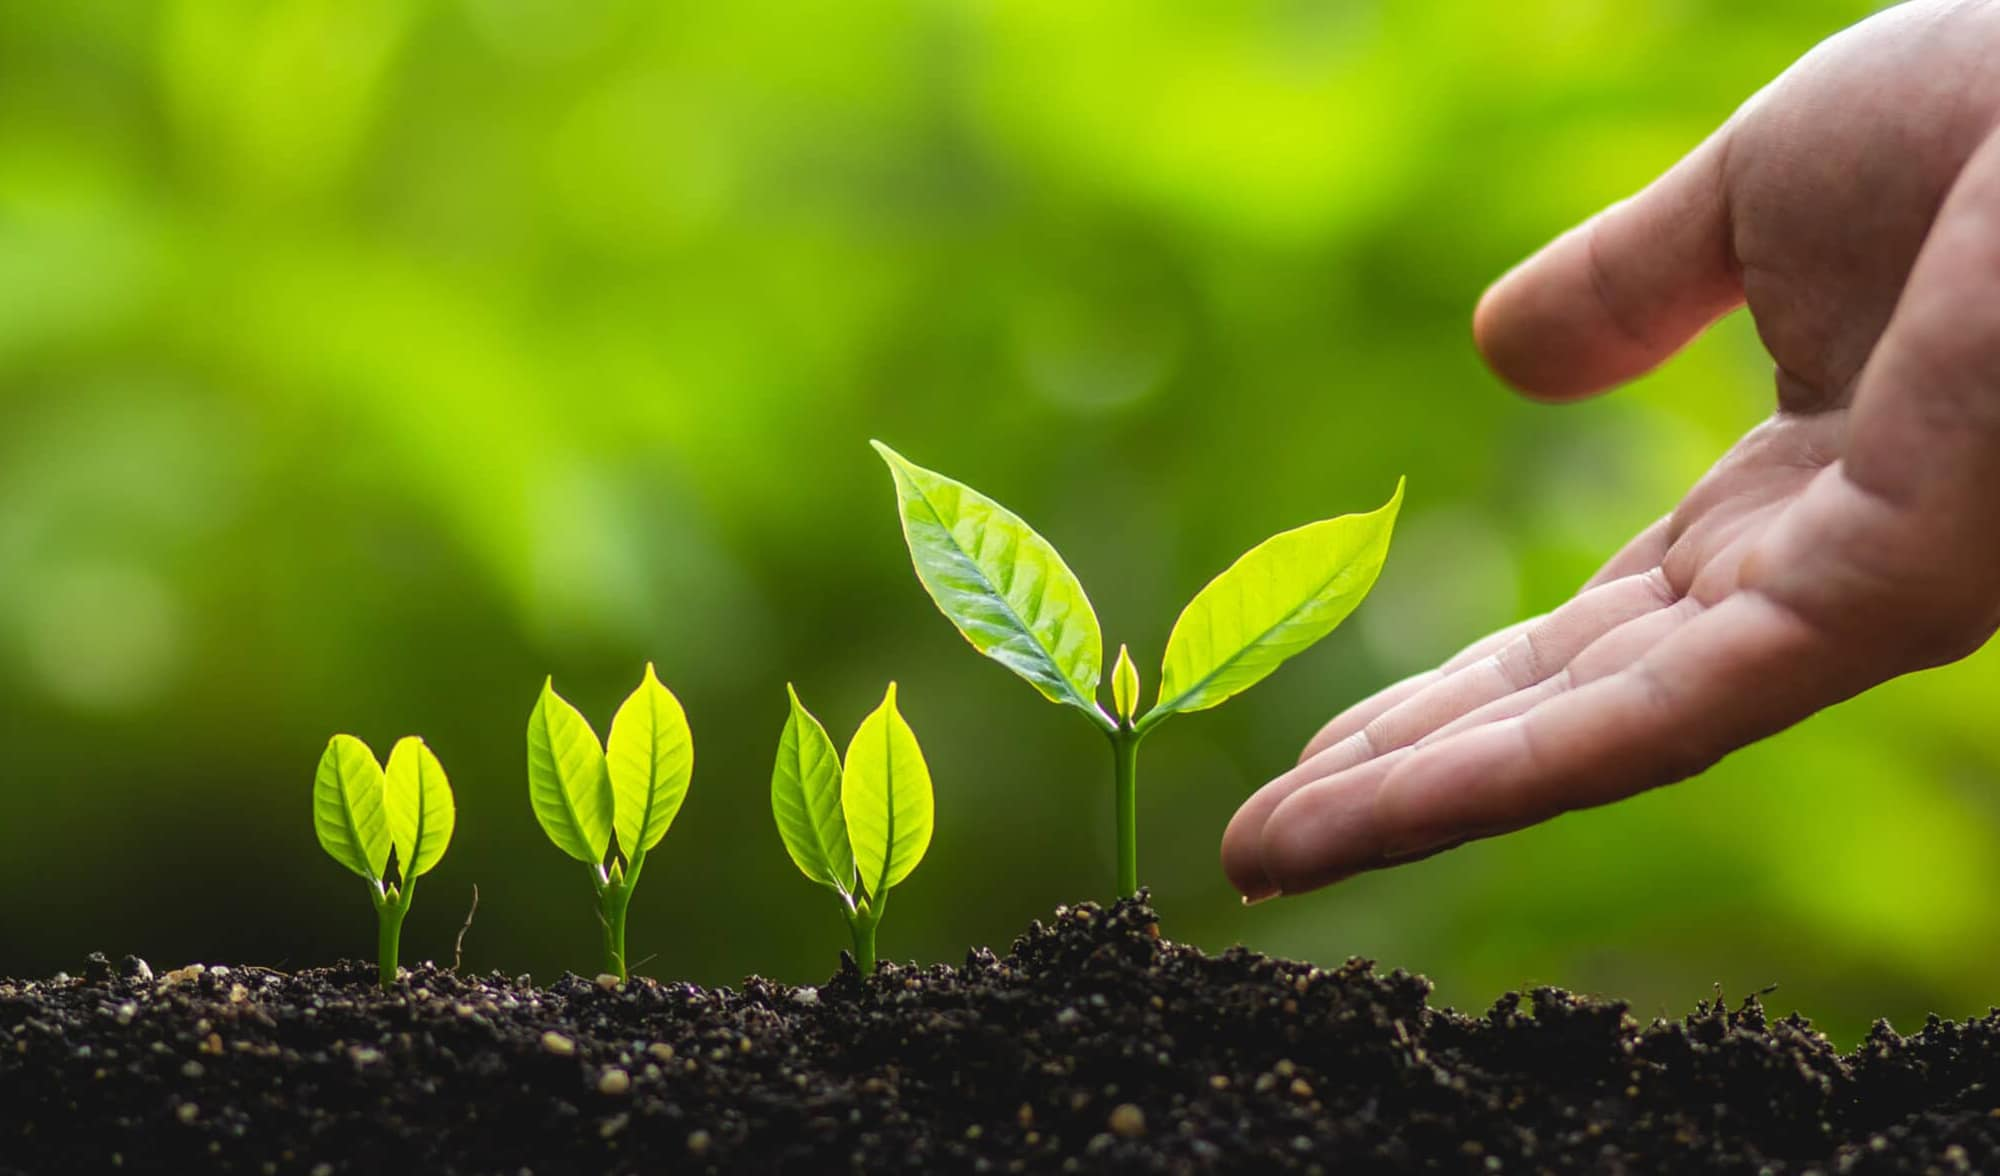 Growing plants with helping hand representing personal growth helped by counsellor-psychotherapist